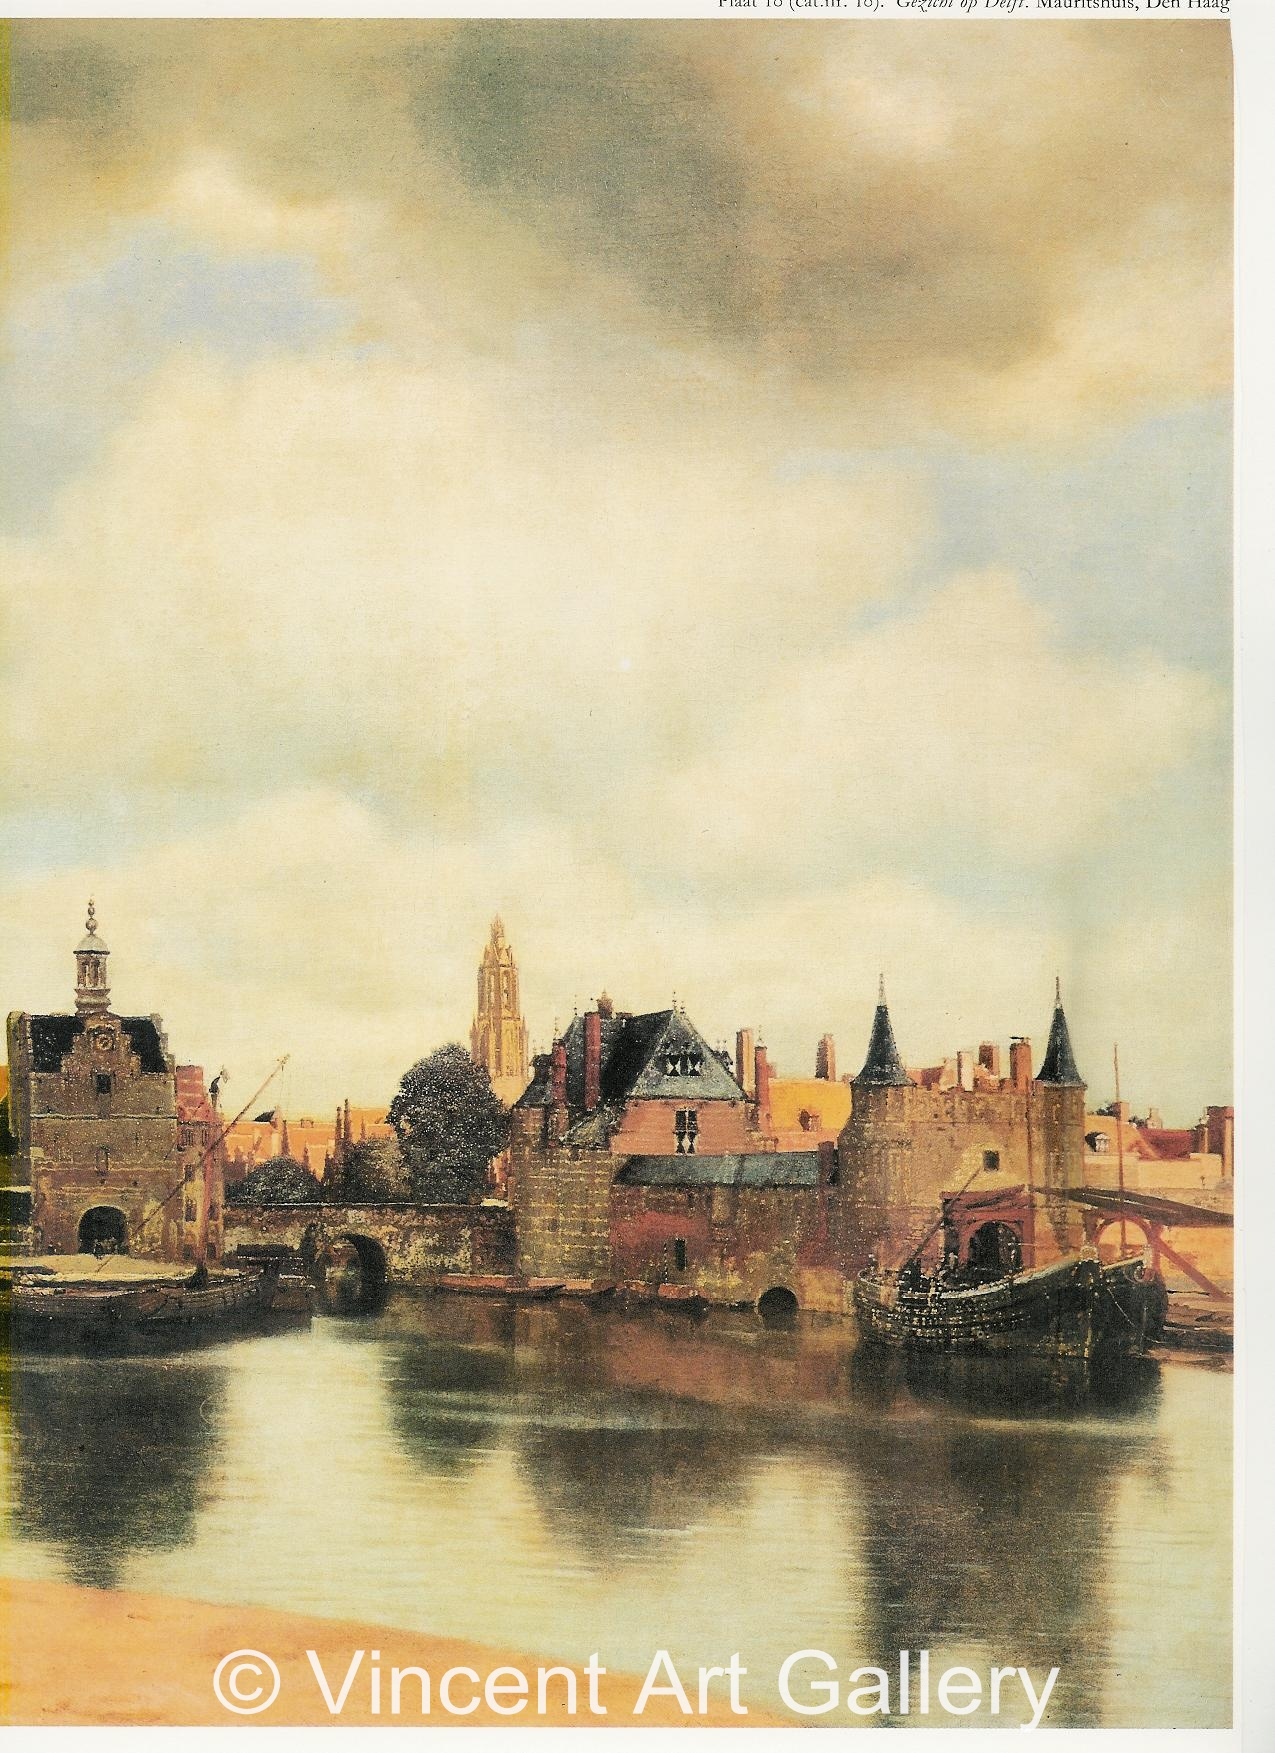 A635, VERMEER, View of Delft, DETAIL 1